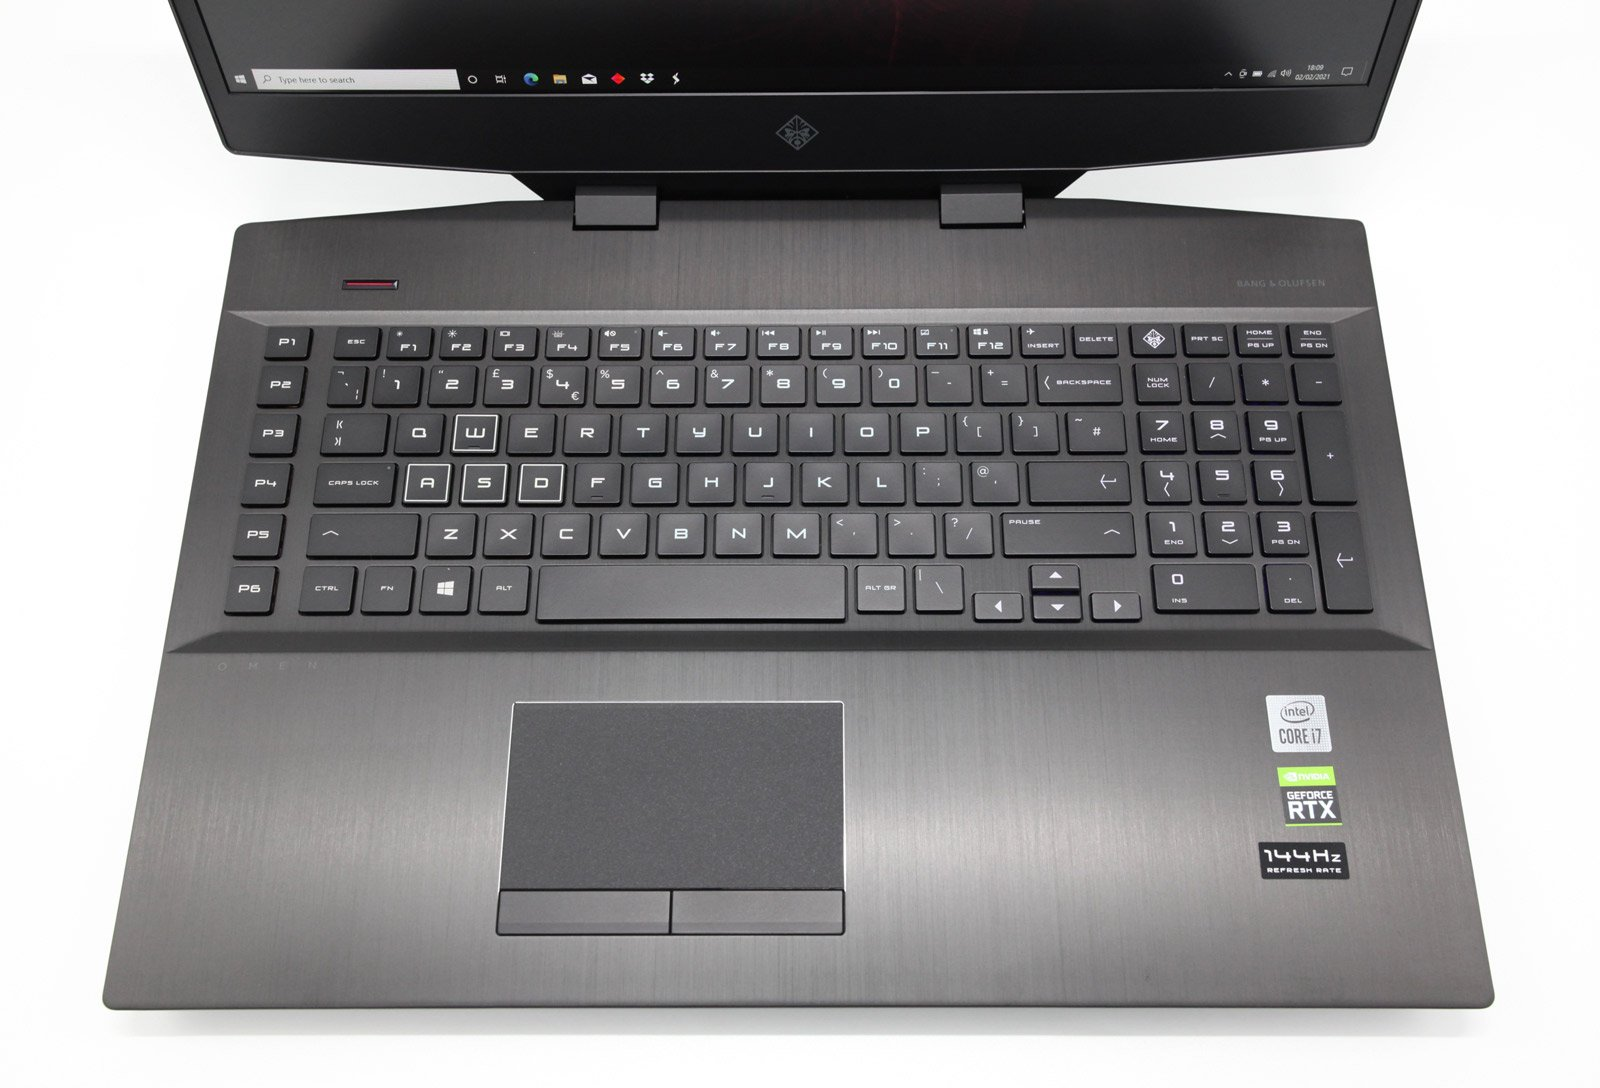 HP Omen 17 144Hz Gaming Laptop: 10th Gen i7, RTX 2070, 512GB+HDD, 16GB Warranty - CruiseTech